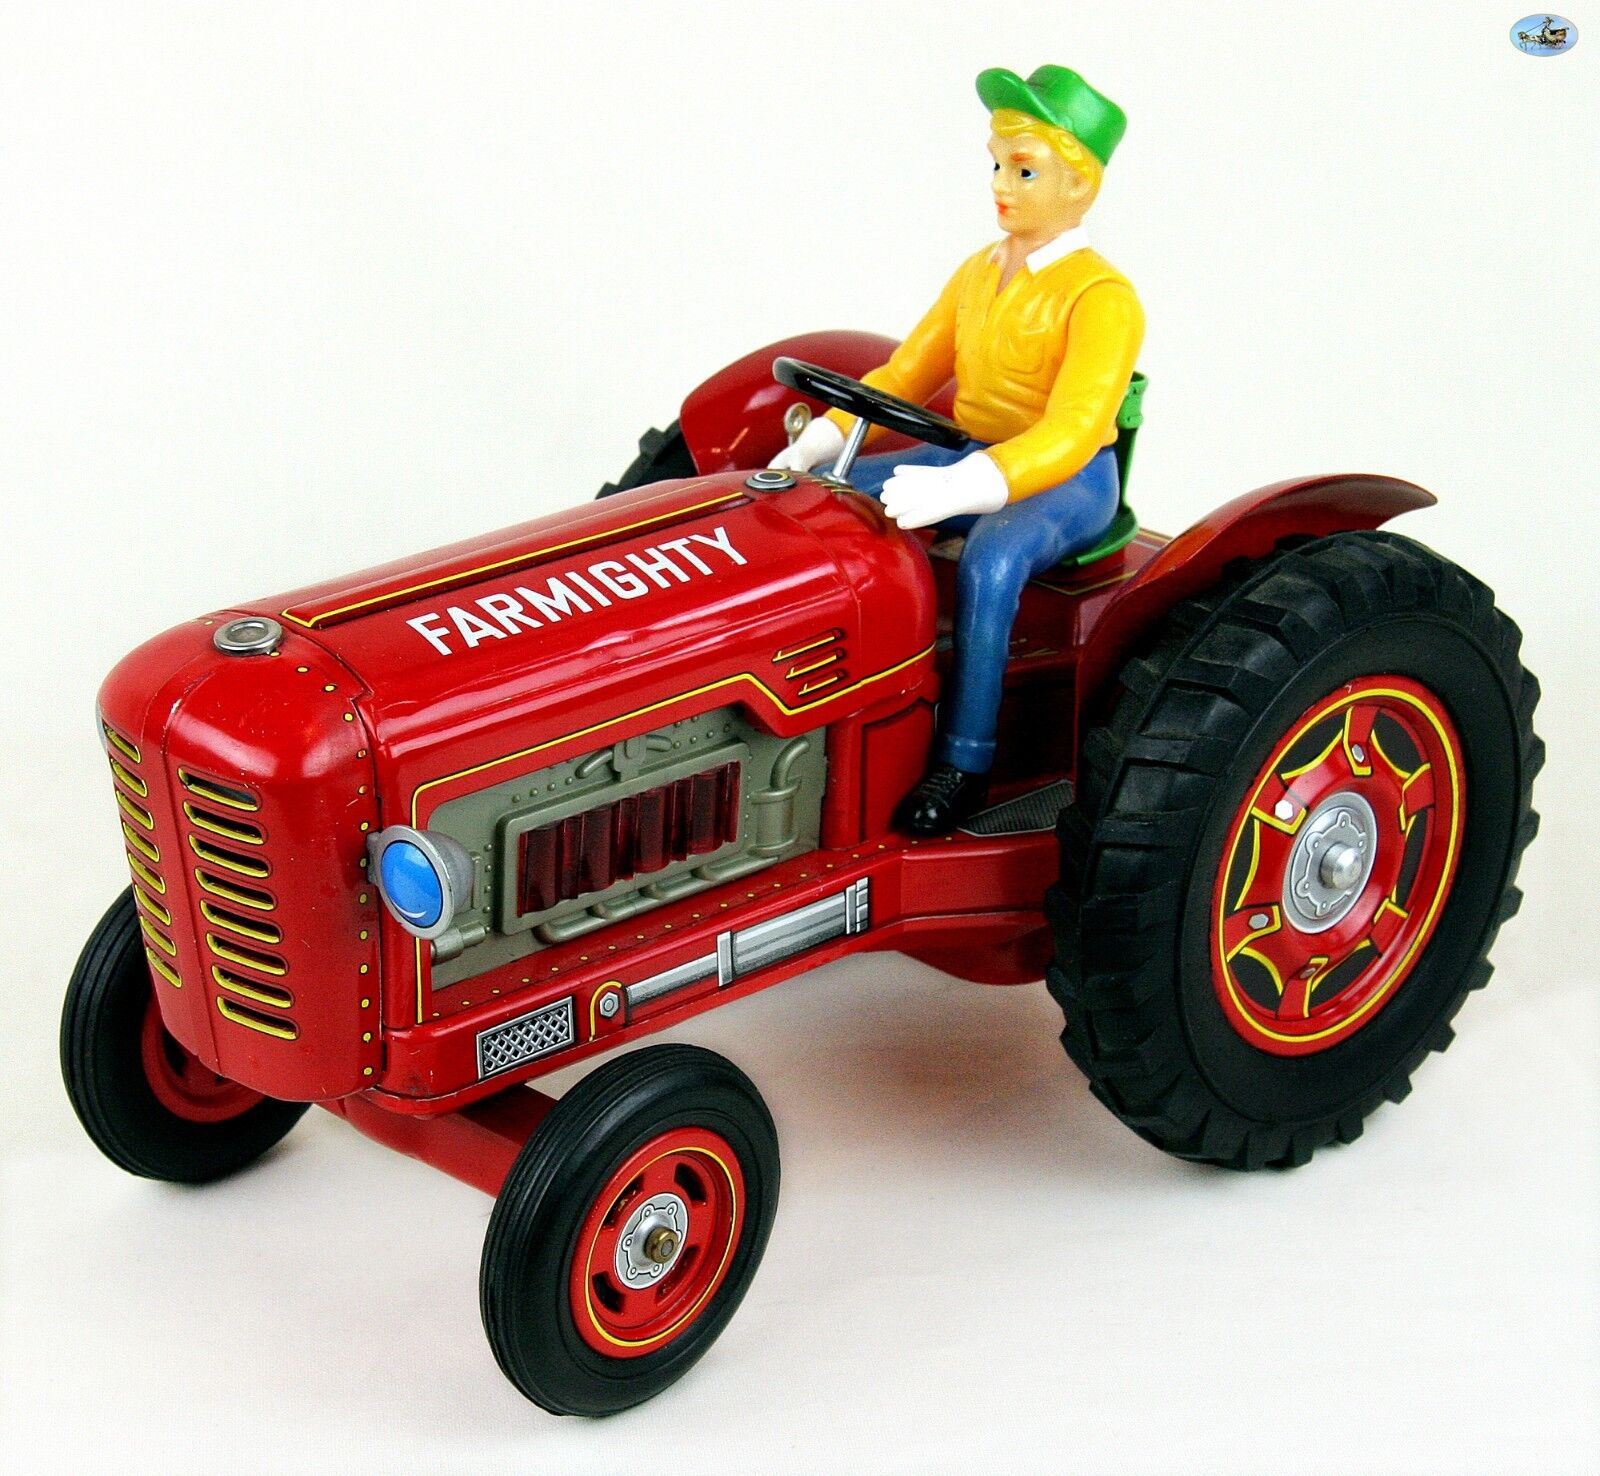 Fine Vintage 1960 Japan MODERN TOYS TM Farmighty Battery Operated Friction Truck